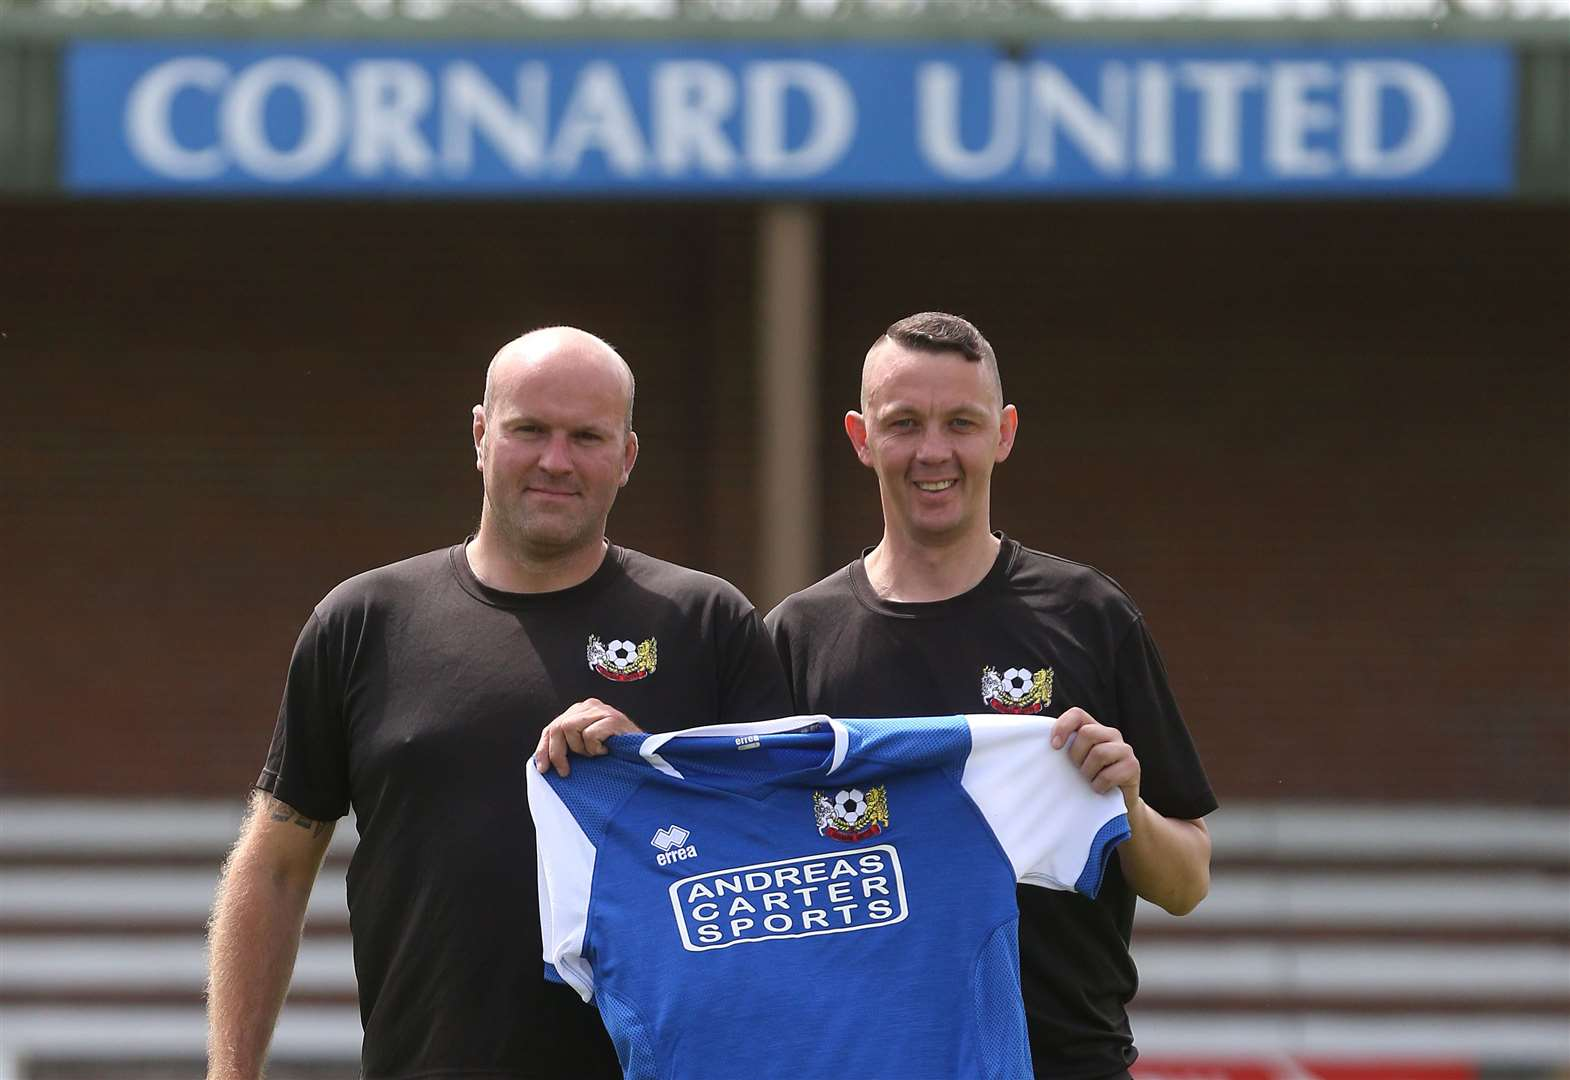 New Cornard manager looks to build on positive season